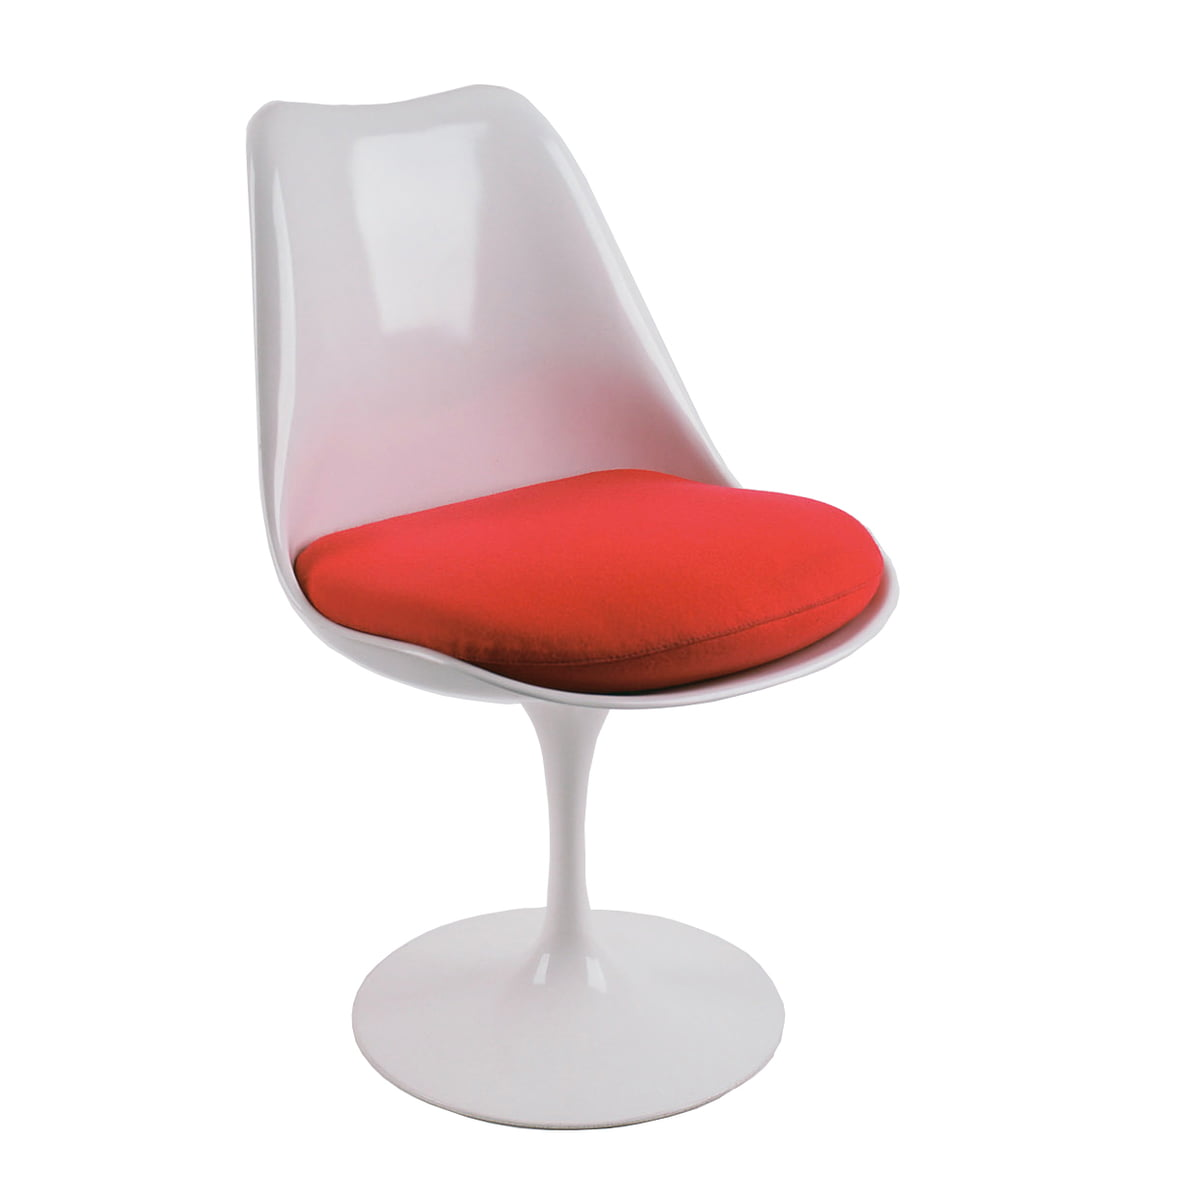 the from knoll conveniently controls life seated shop chairs chair position adjust